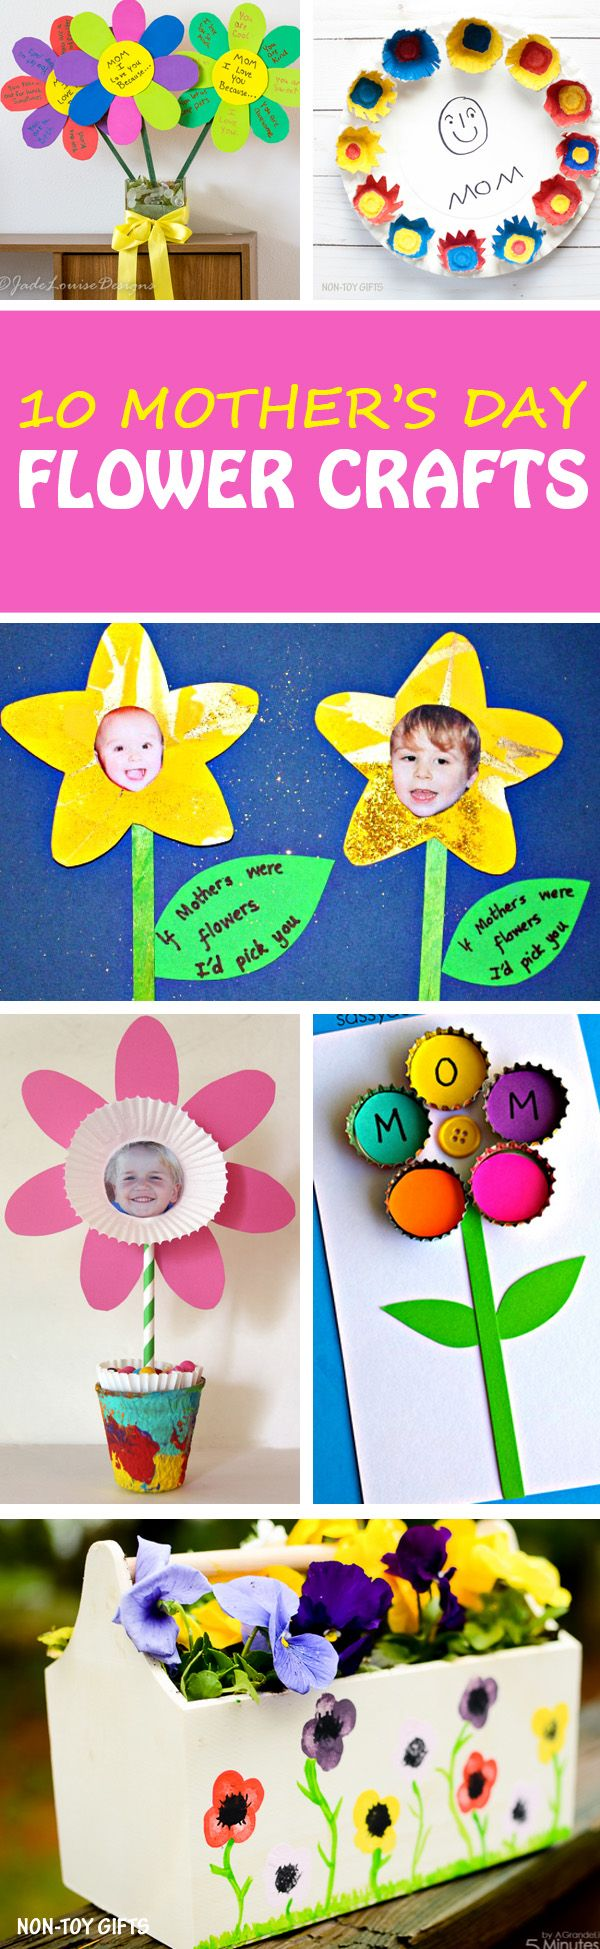 Easy Mother's Day flower crafts for toddlers, preschoolers, kindergartners and older kids. Cupcake liner flower, handprint bookmarks, flower cards, mom portrait to make for moms, grandmothers and aunts. A fun kid-made gift or card to make in the classroom. | at Non-Toy Gifts